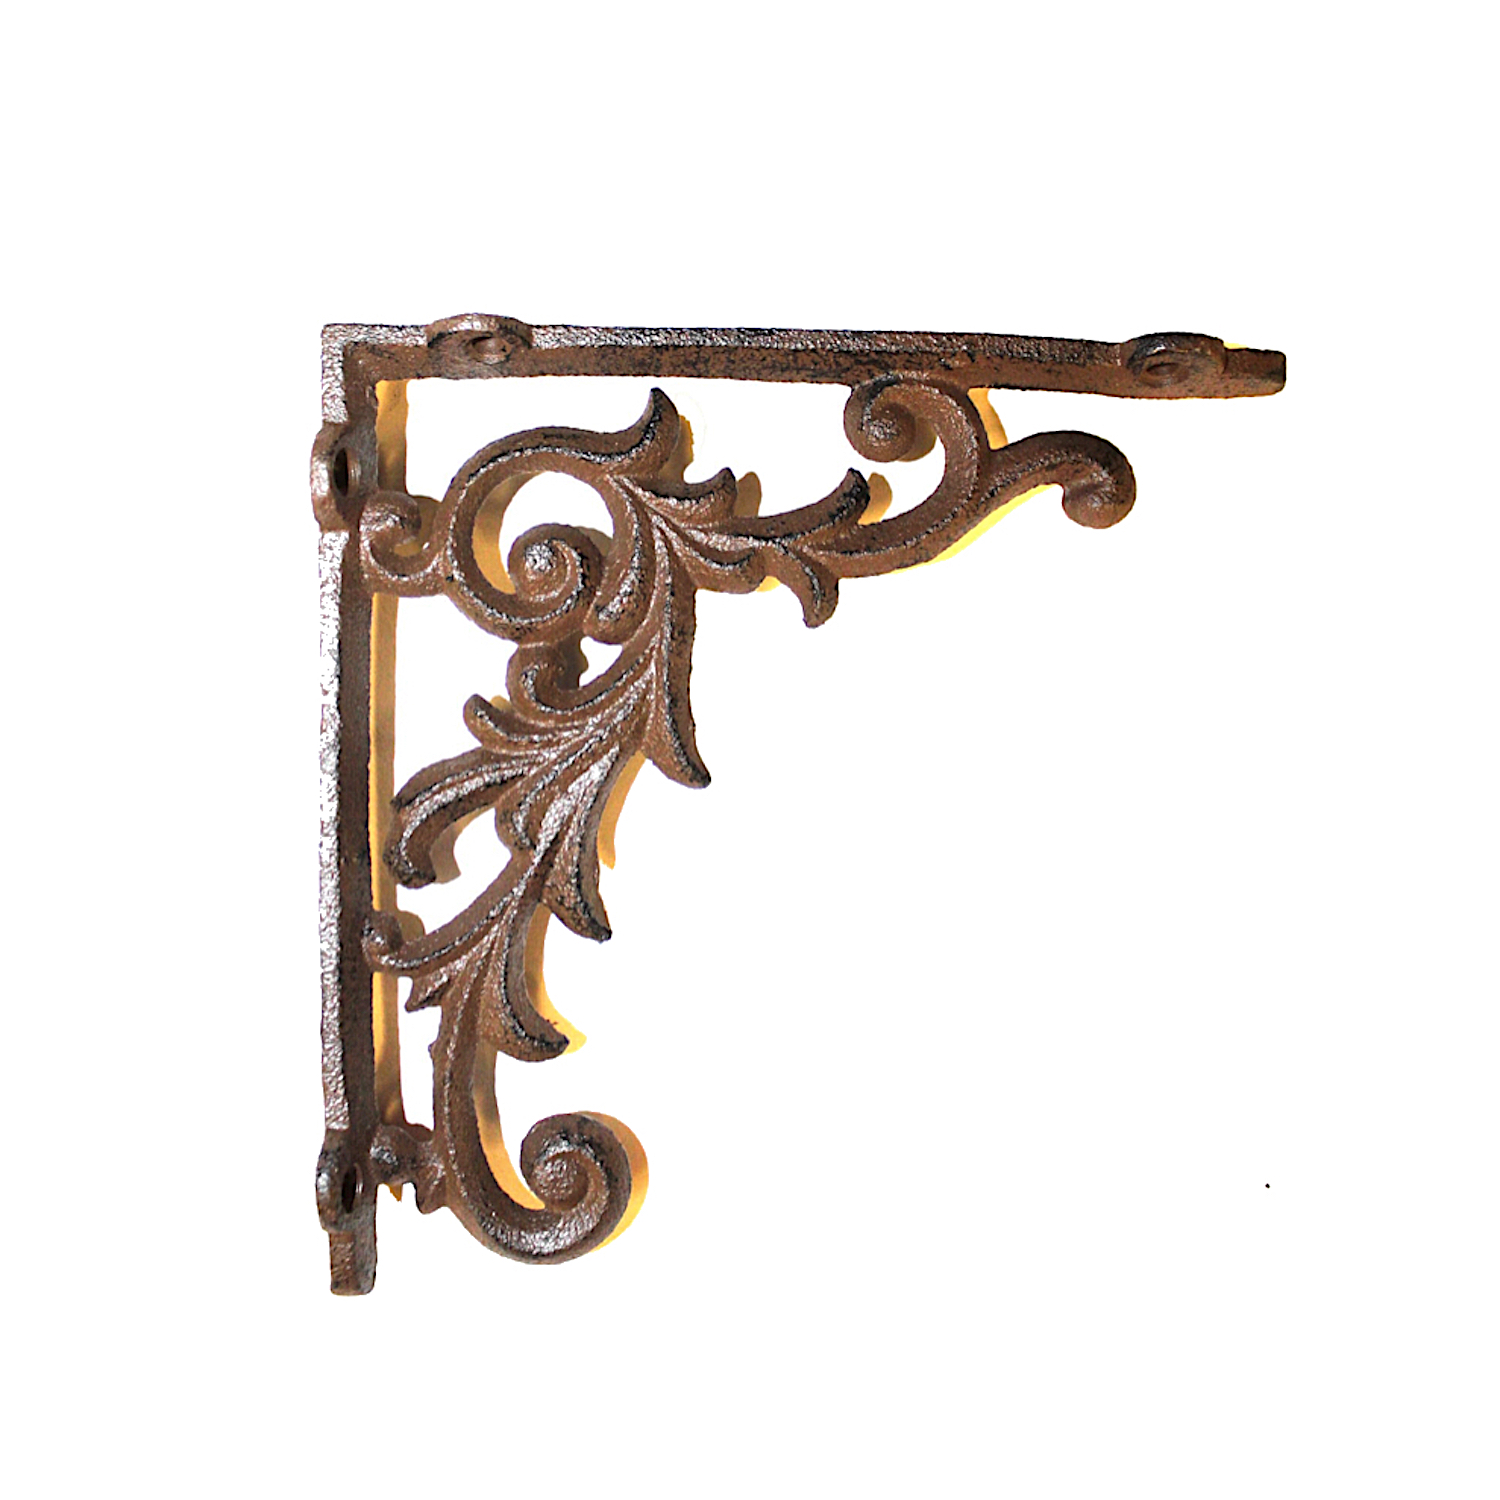 Old Country Shelf Bracket In Cast Iron Small Leaf 6 5 The Kings Bay